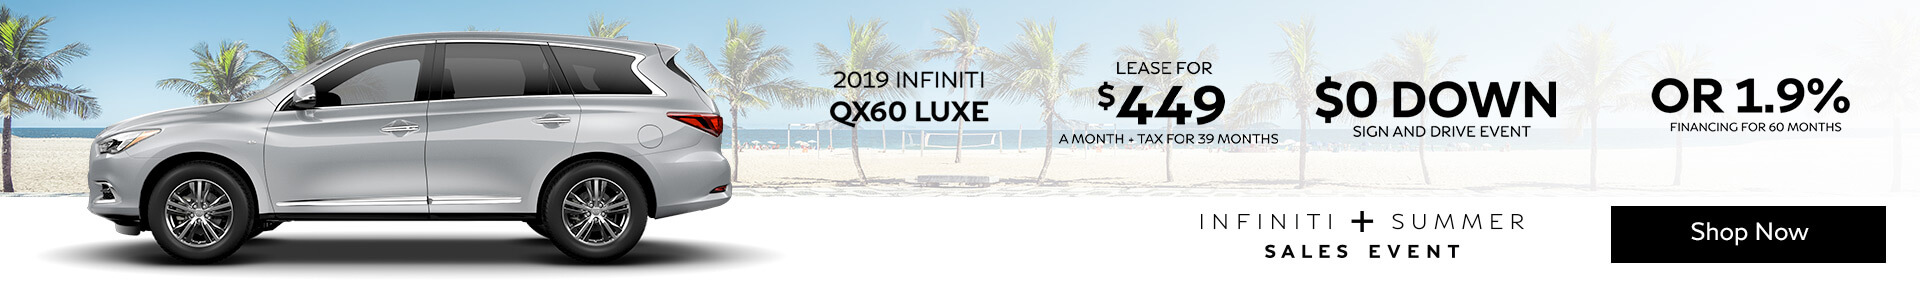 QX60 LUXE Lease for $399